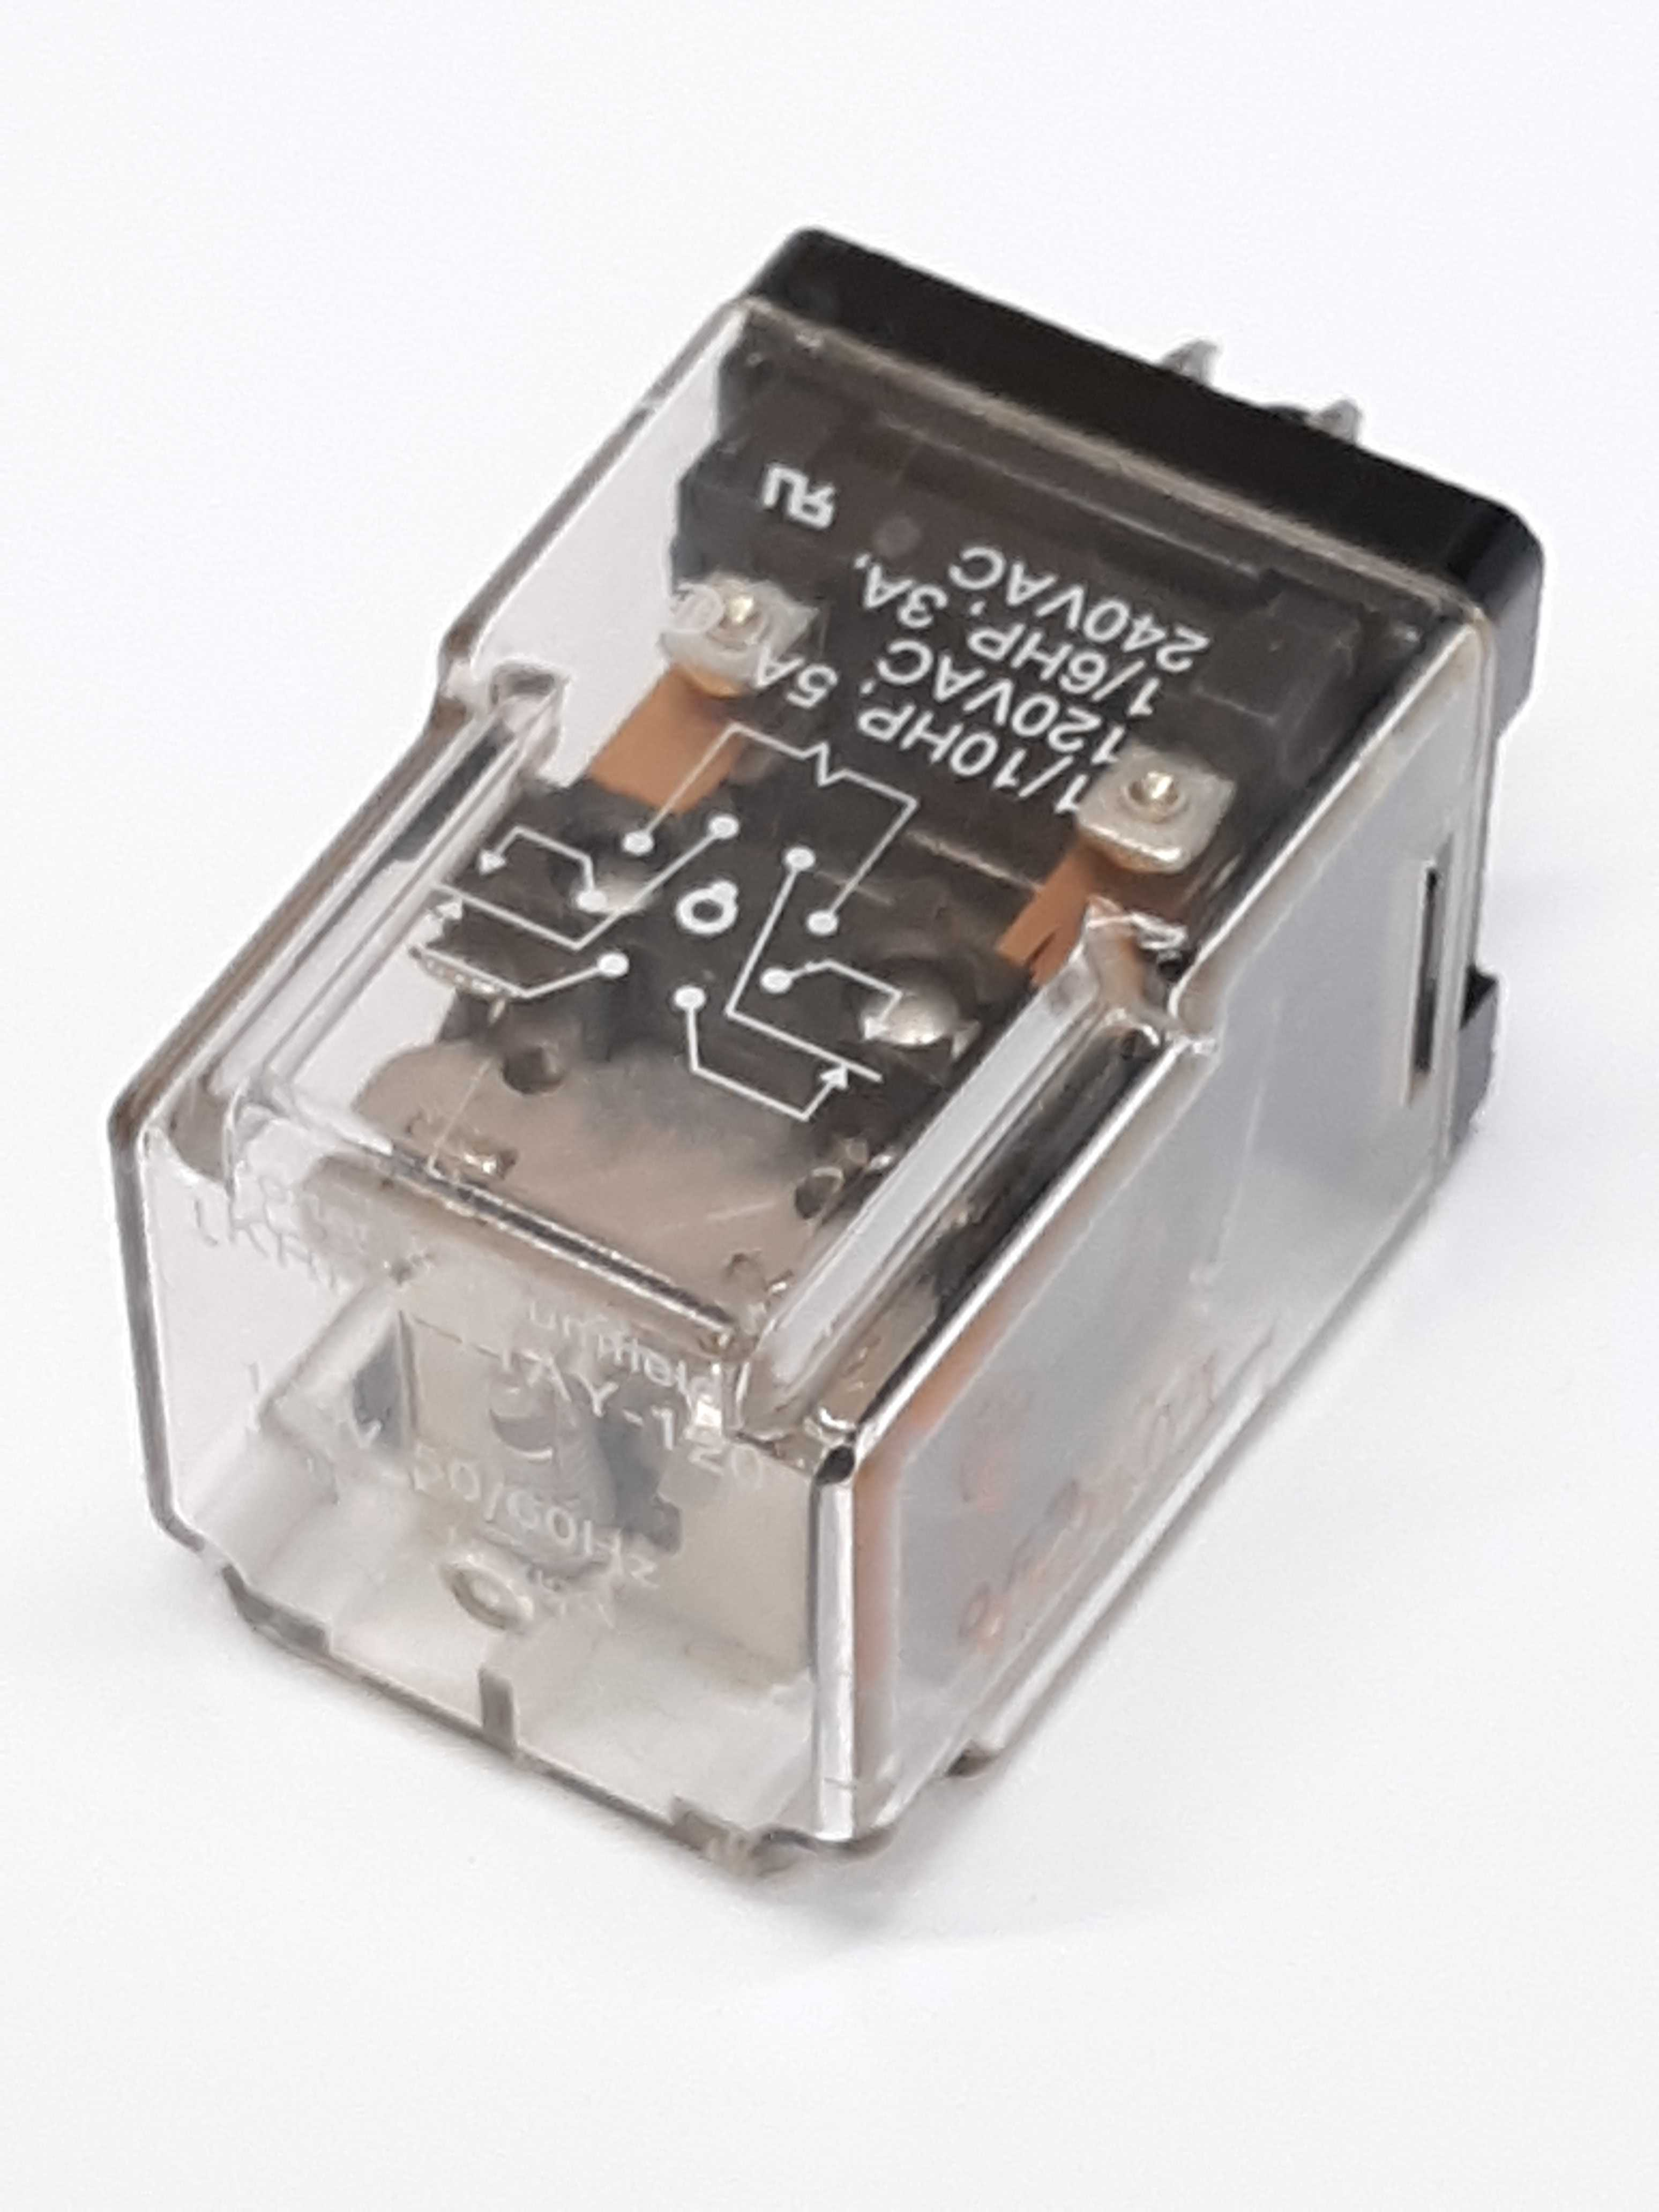 Potter & Brumfield KRPA-11AY-120 Relay 120 VAC